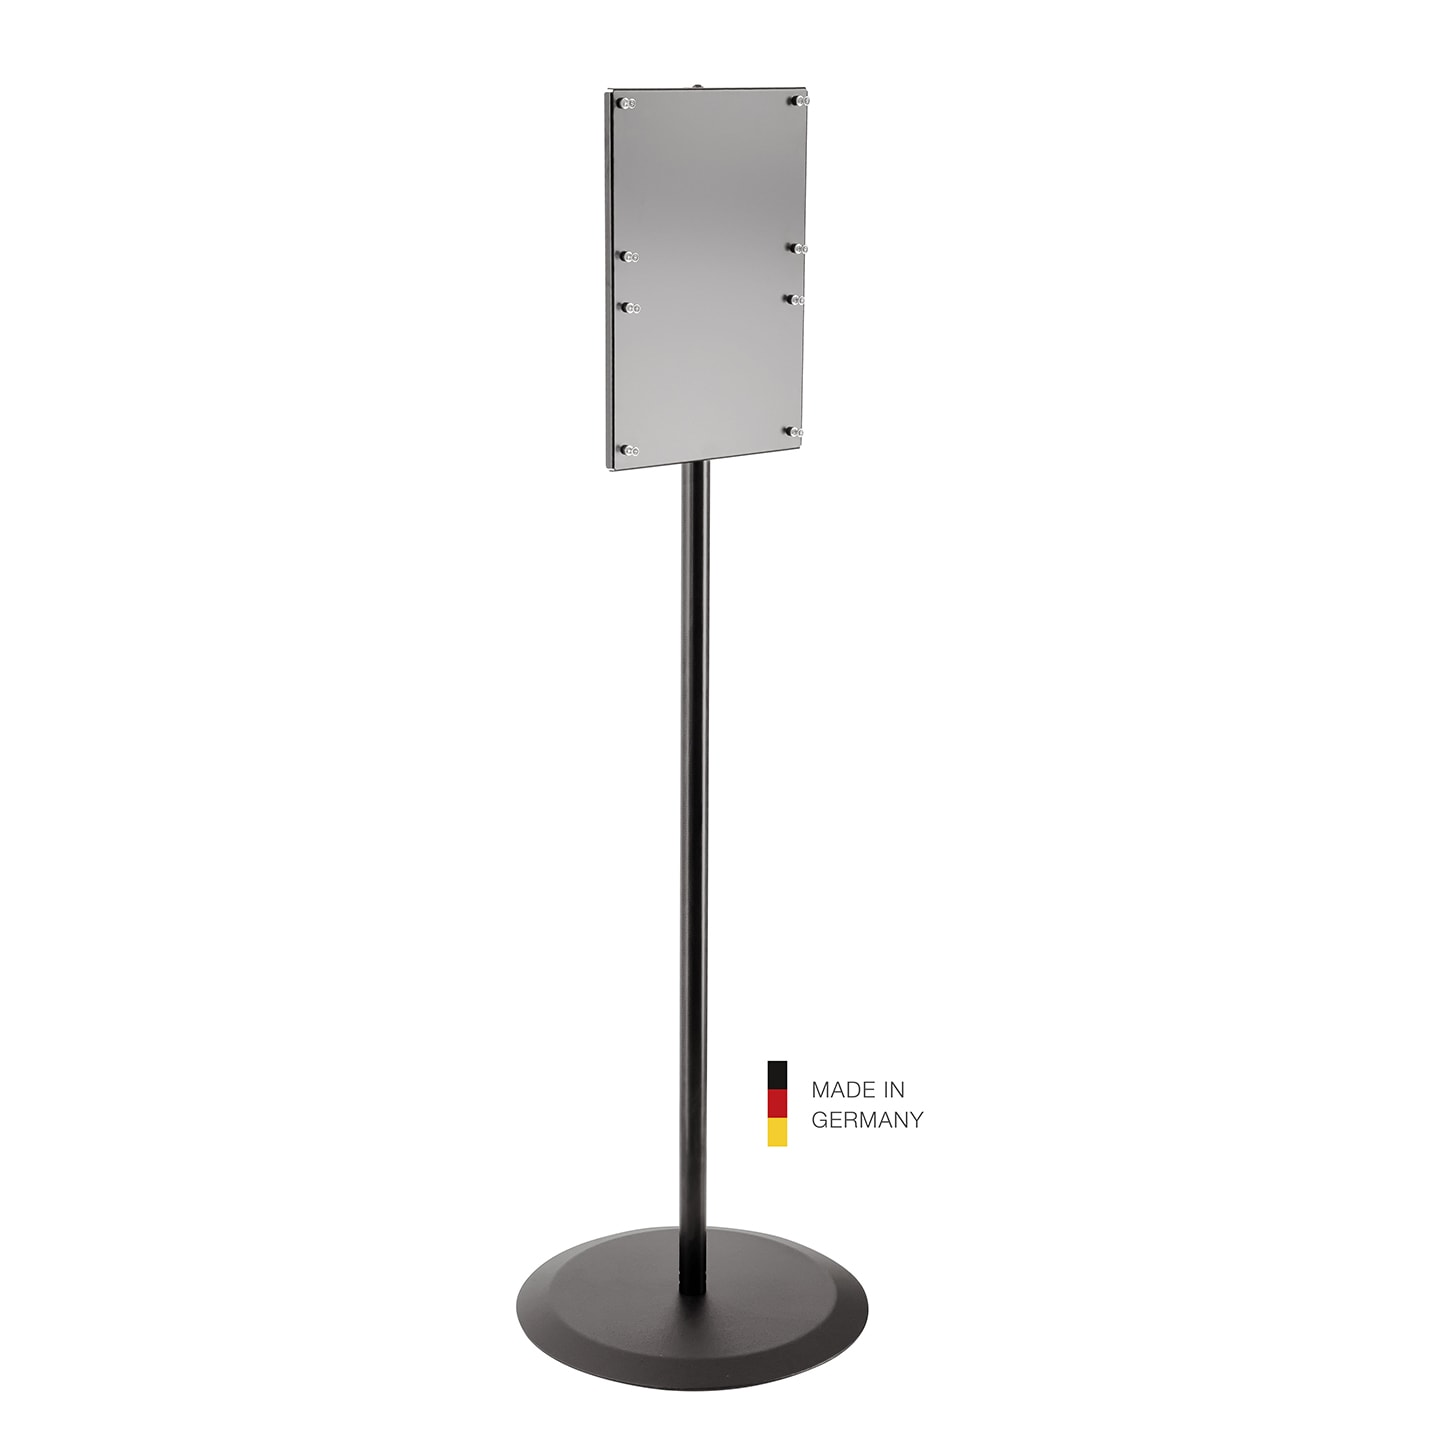 KM80395 - Poster display stand